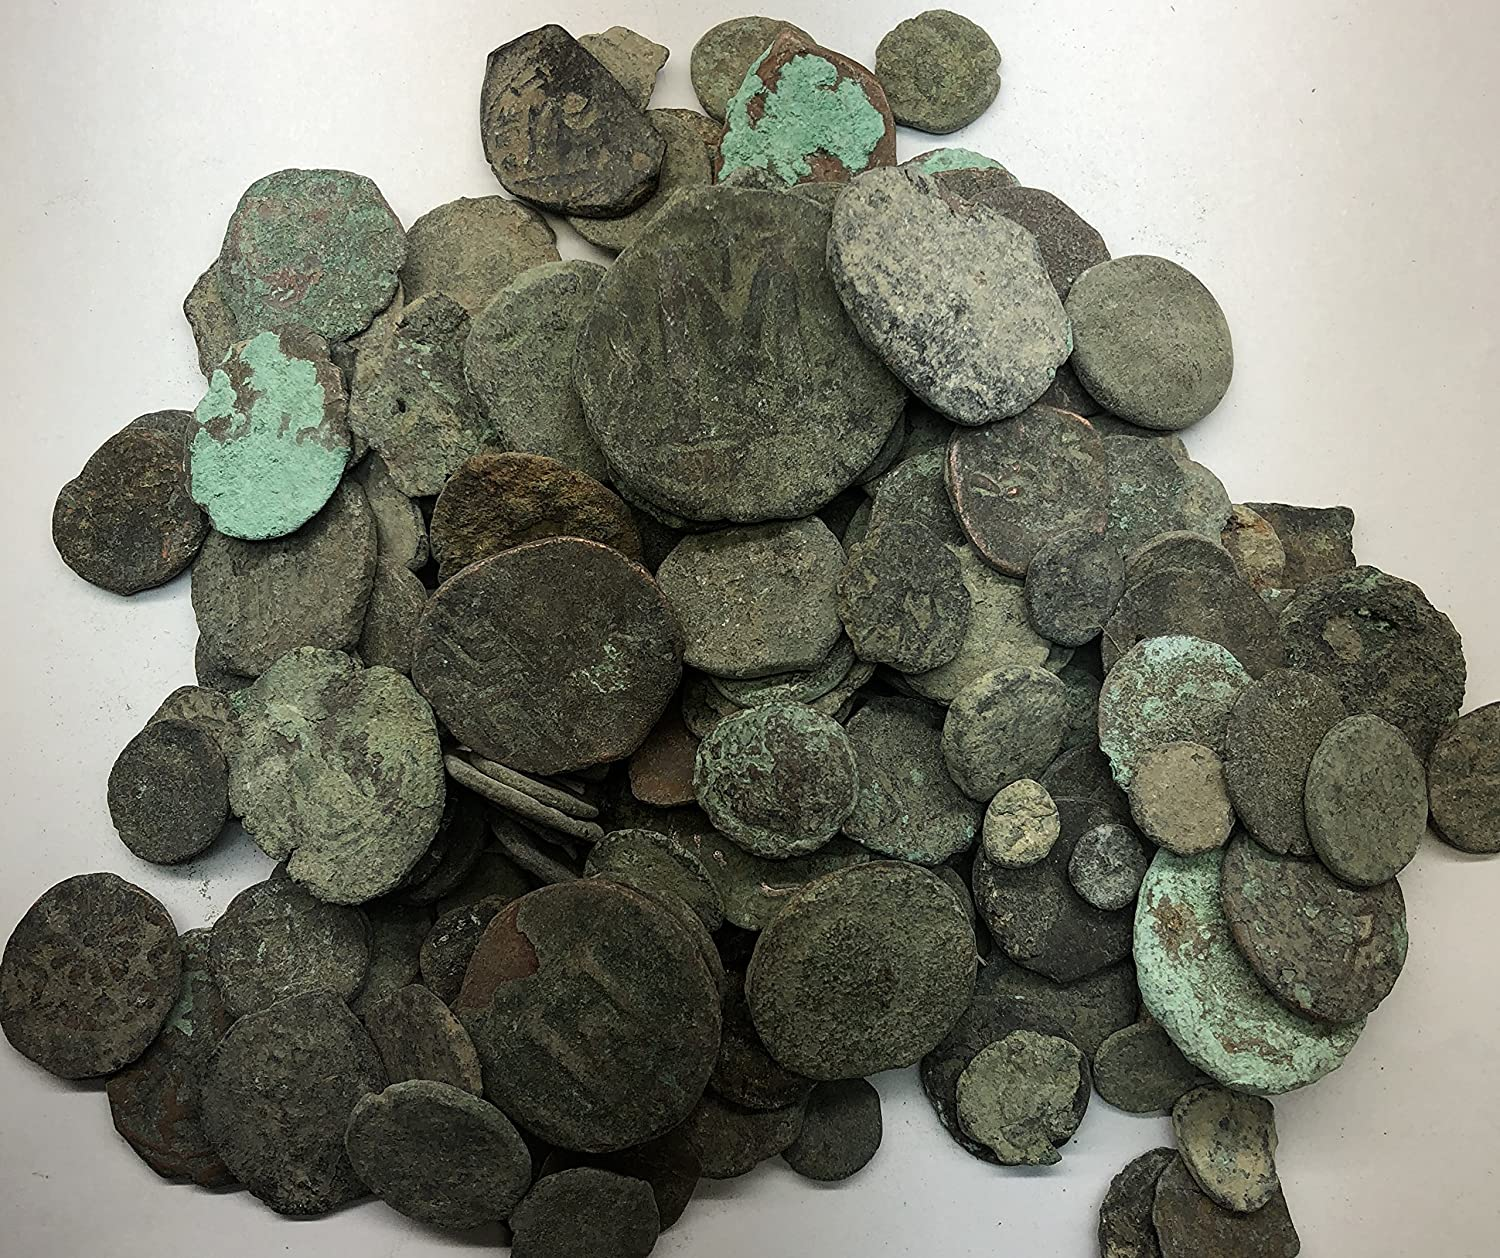 SILVER COINS INCLUDED! GENUINE UNCLEANED ANCIENT ROMAN COINS GOOD QUALITY